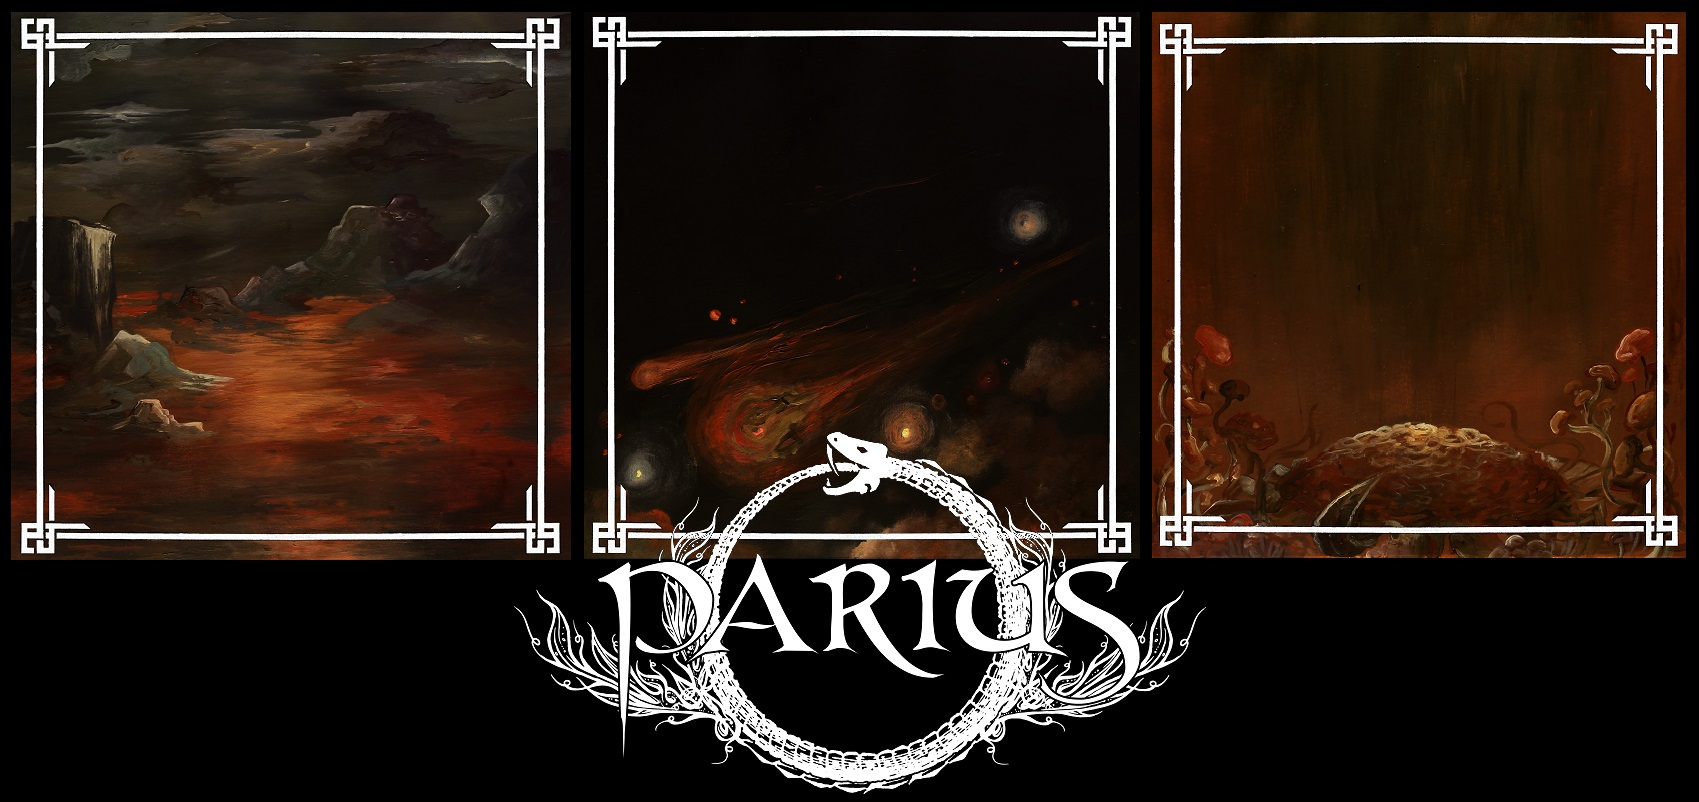 Parius - Let there be light booklet